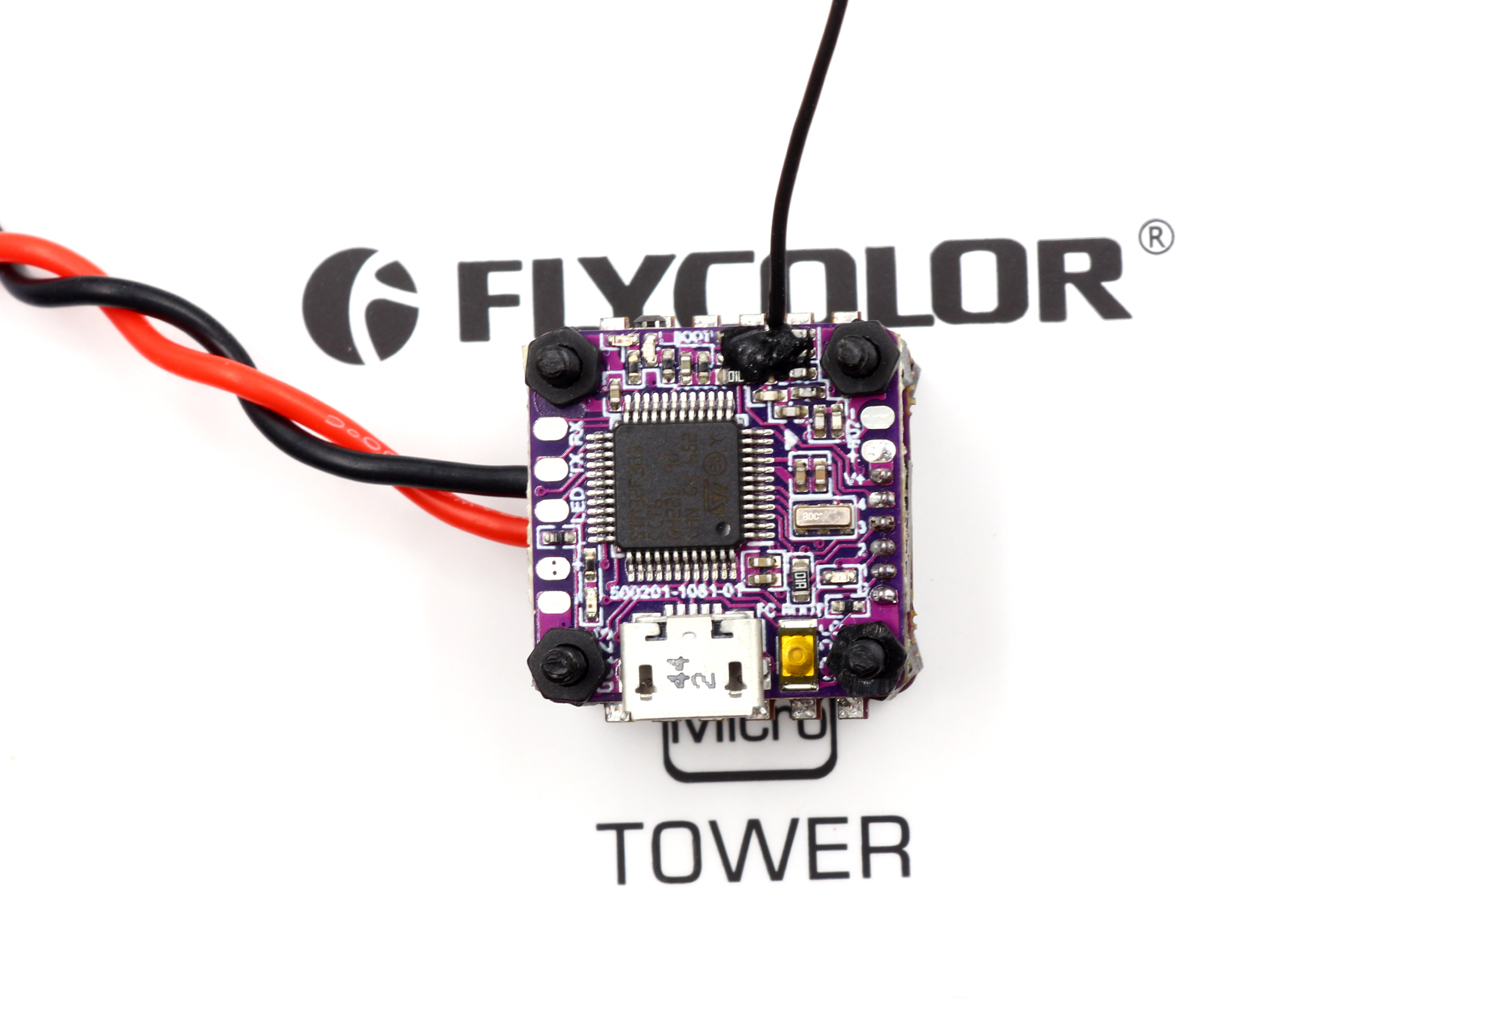 JMT Flycolor Raptor Micro Tower F3 Flight Controller + 4 IN 1 4A Brushless ESC Multi-Rotor for DIY RC Racing Drone Spare Parts цена 2017